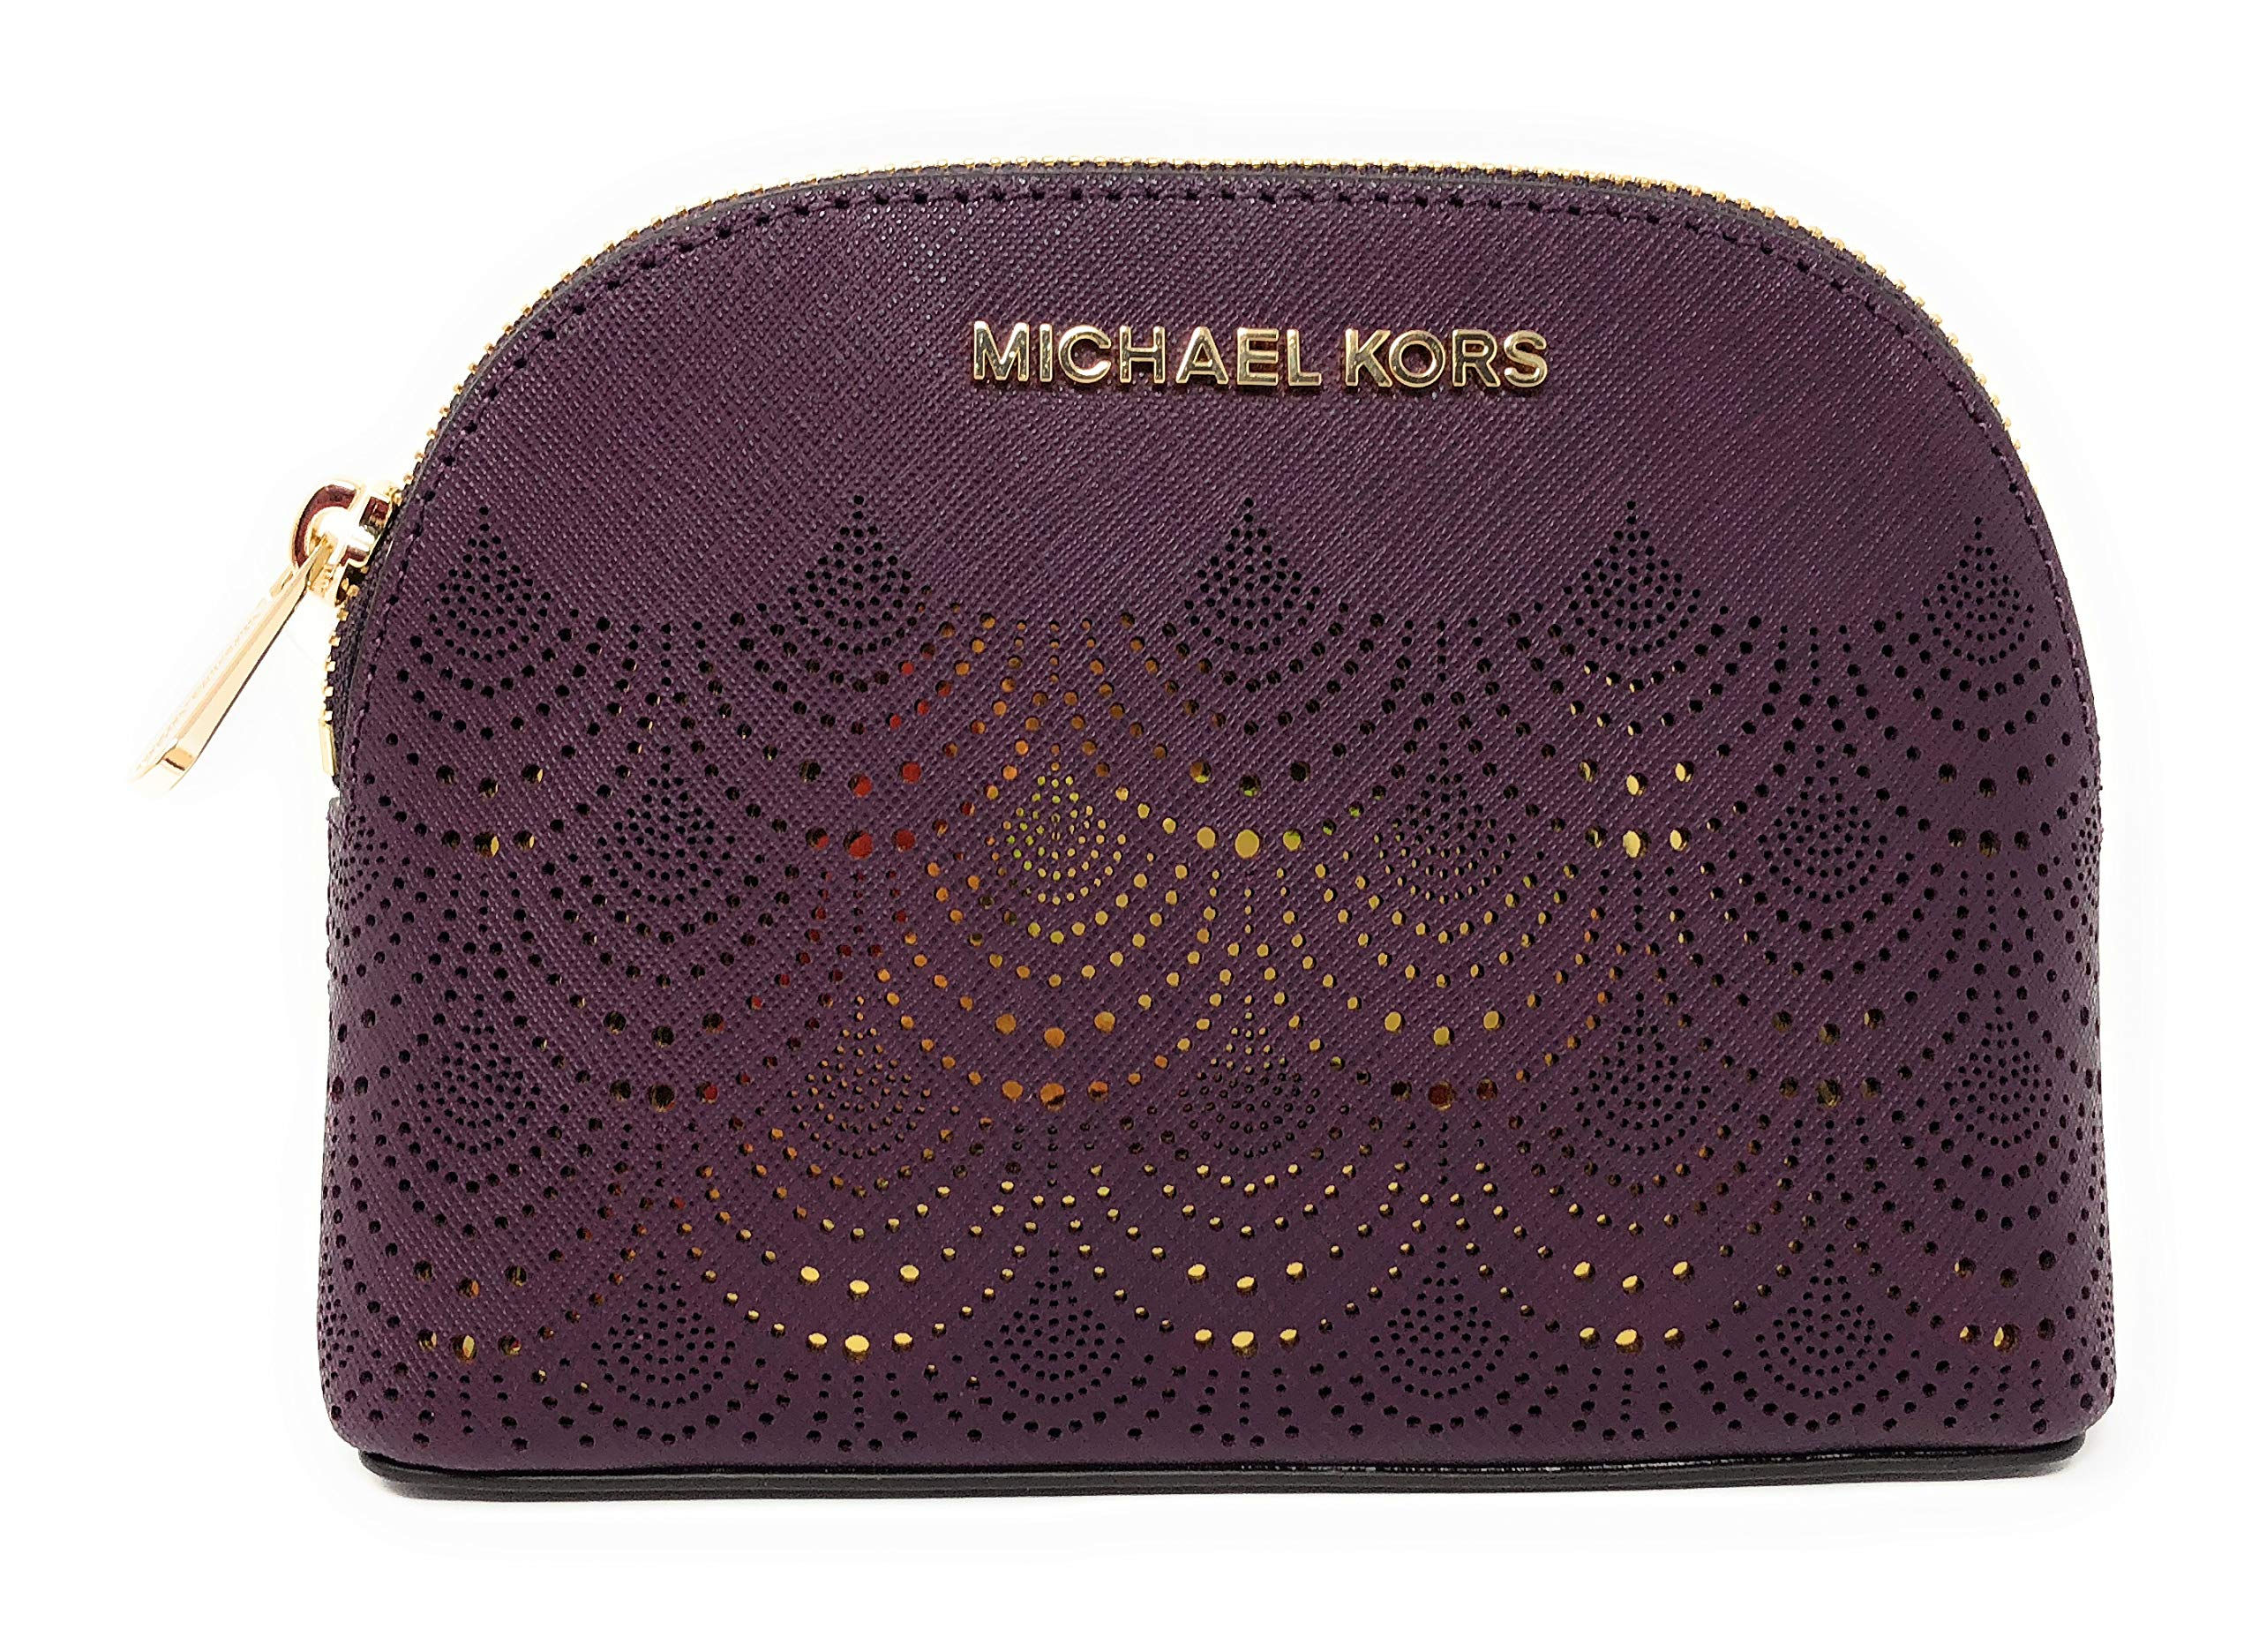 Michael Kors Jet Set Travel Saffiano Leather Lace Cosmetic Travel Pouch in Damson